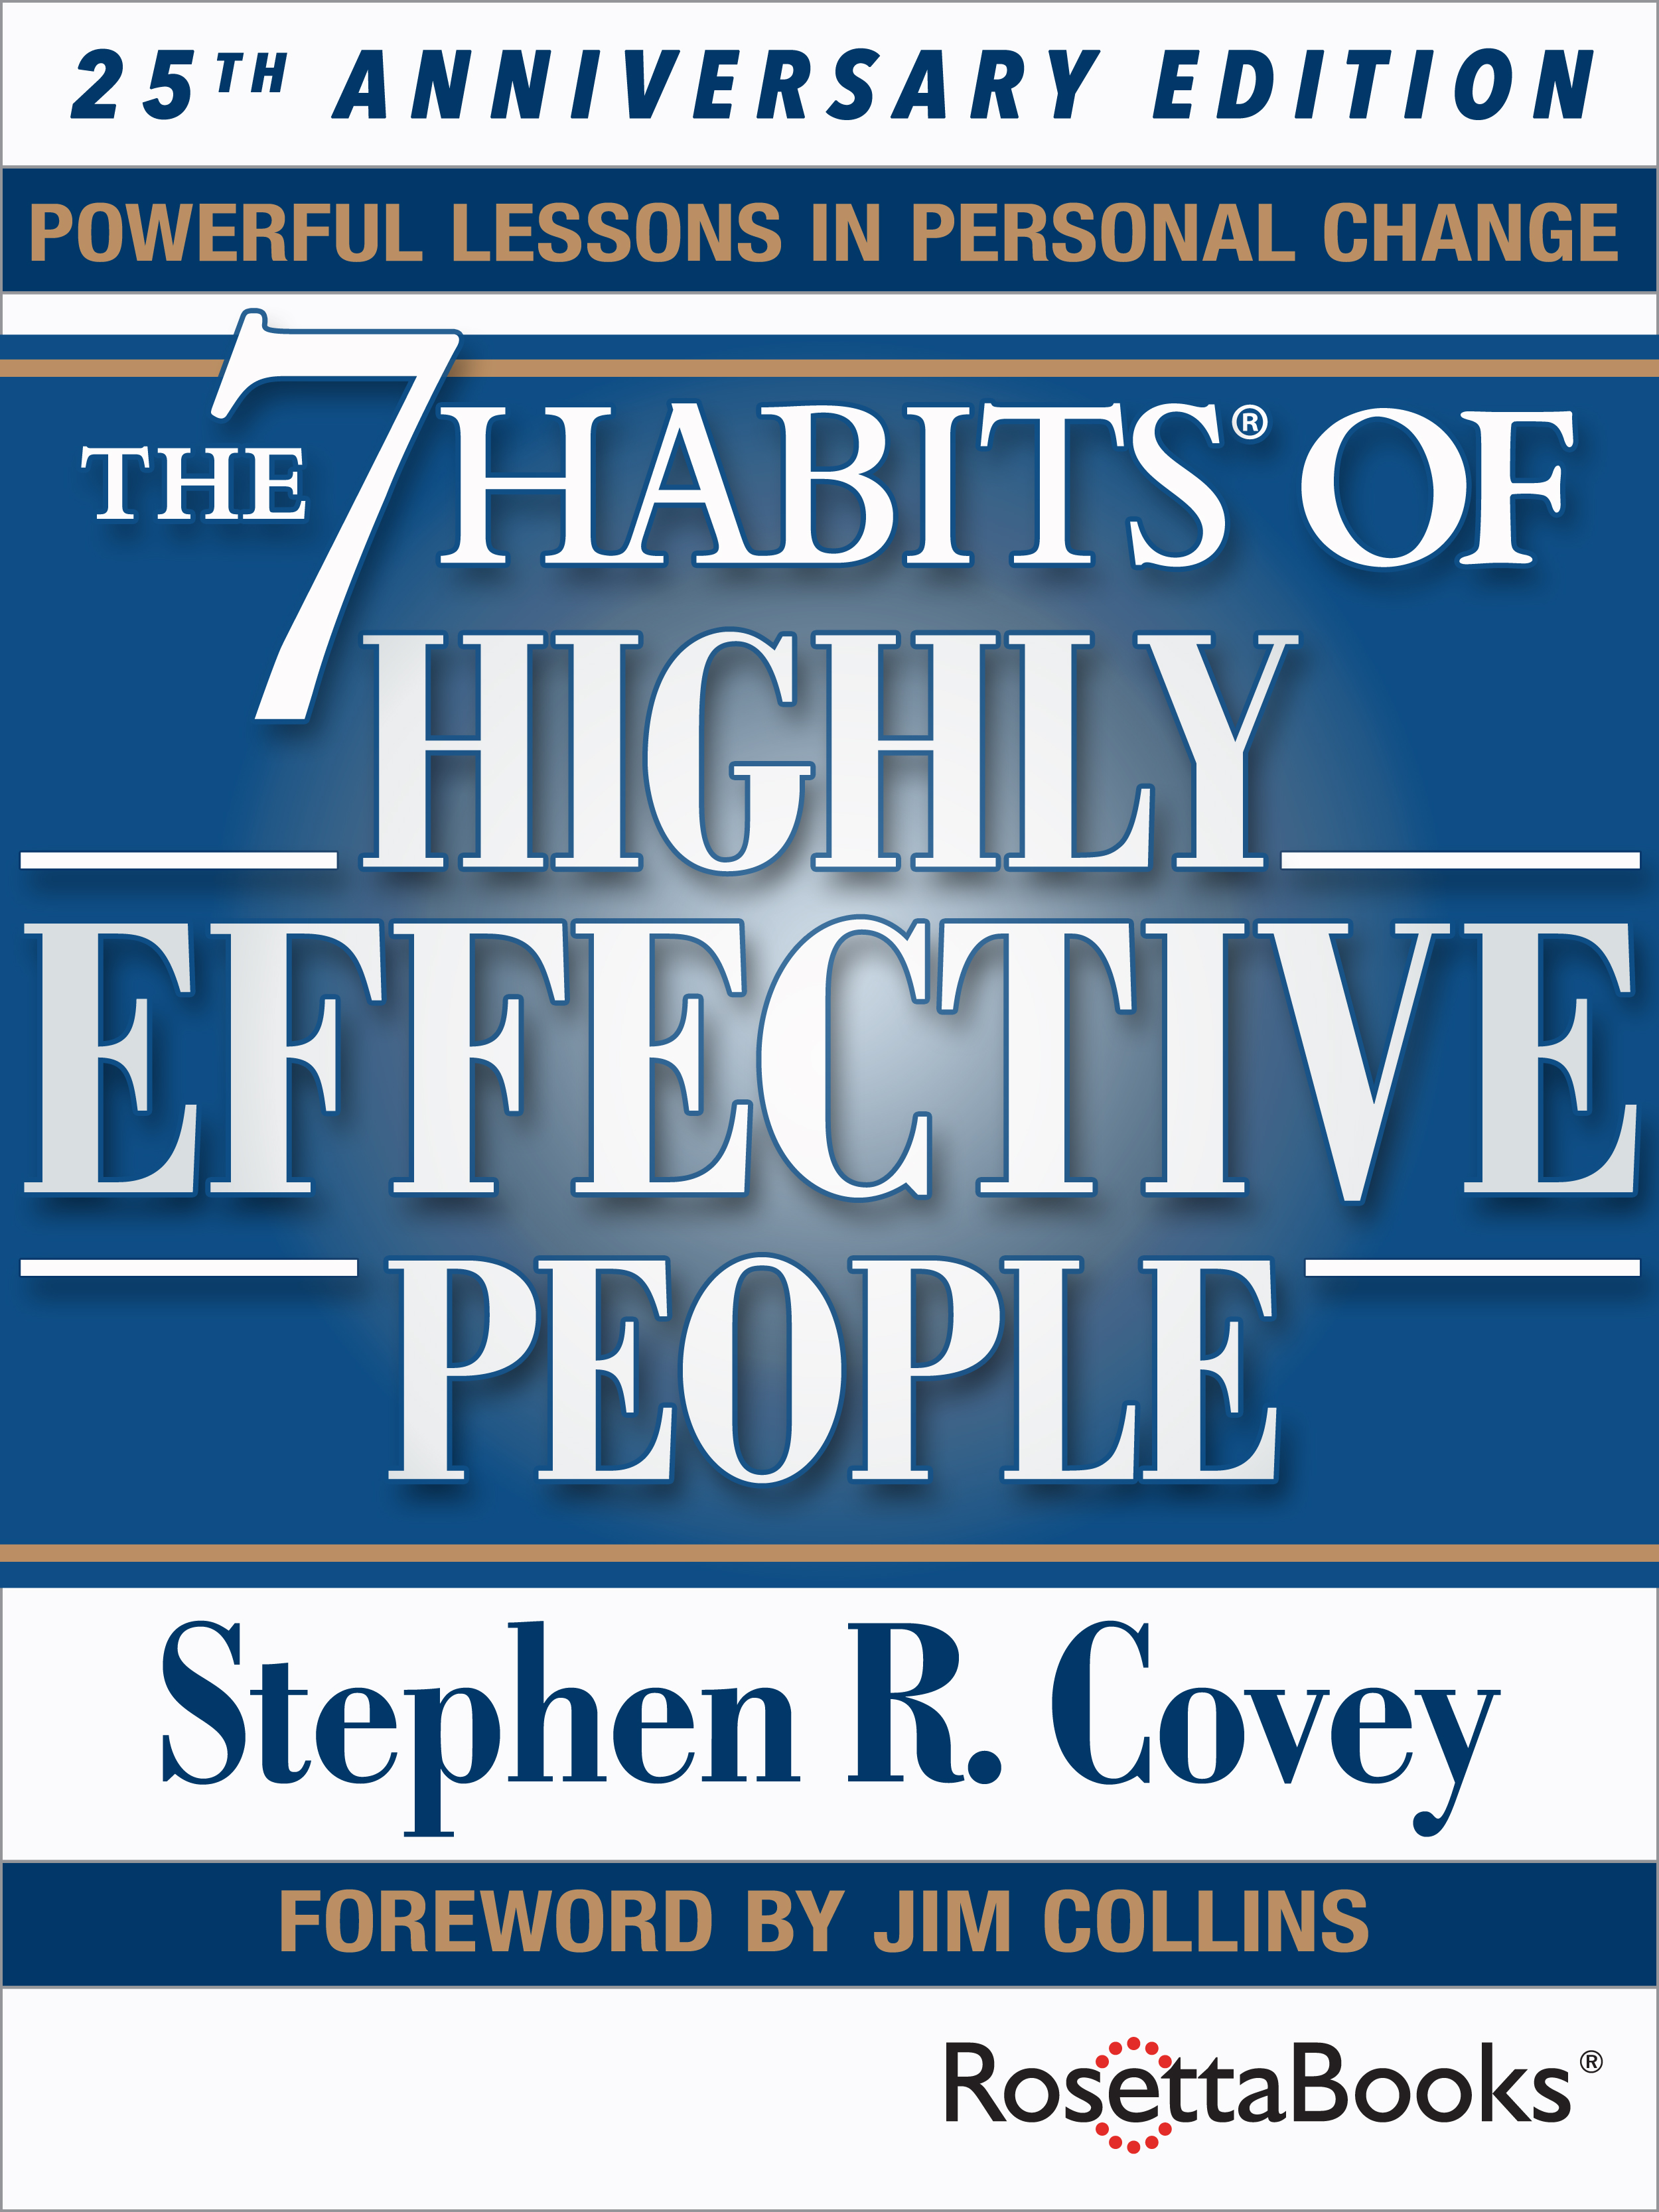 Rosettabooks And Franklin Covey Co Release The 7 Habits